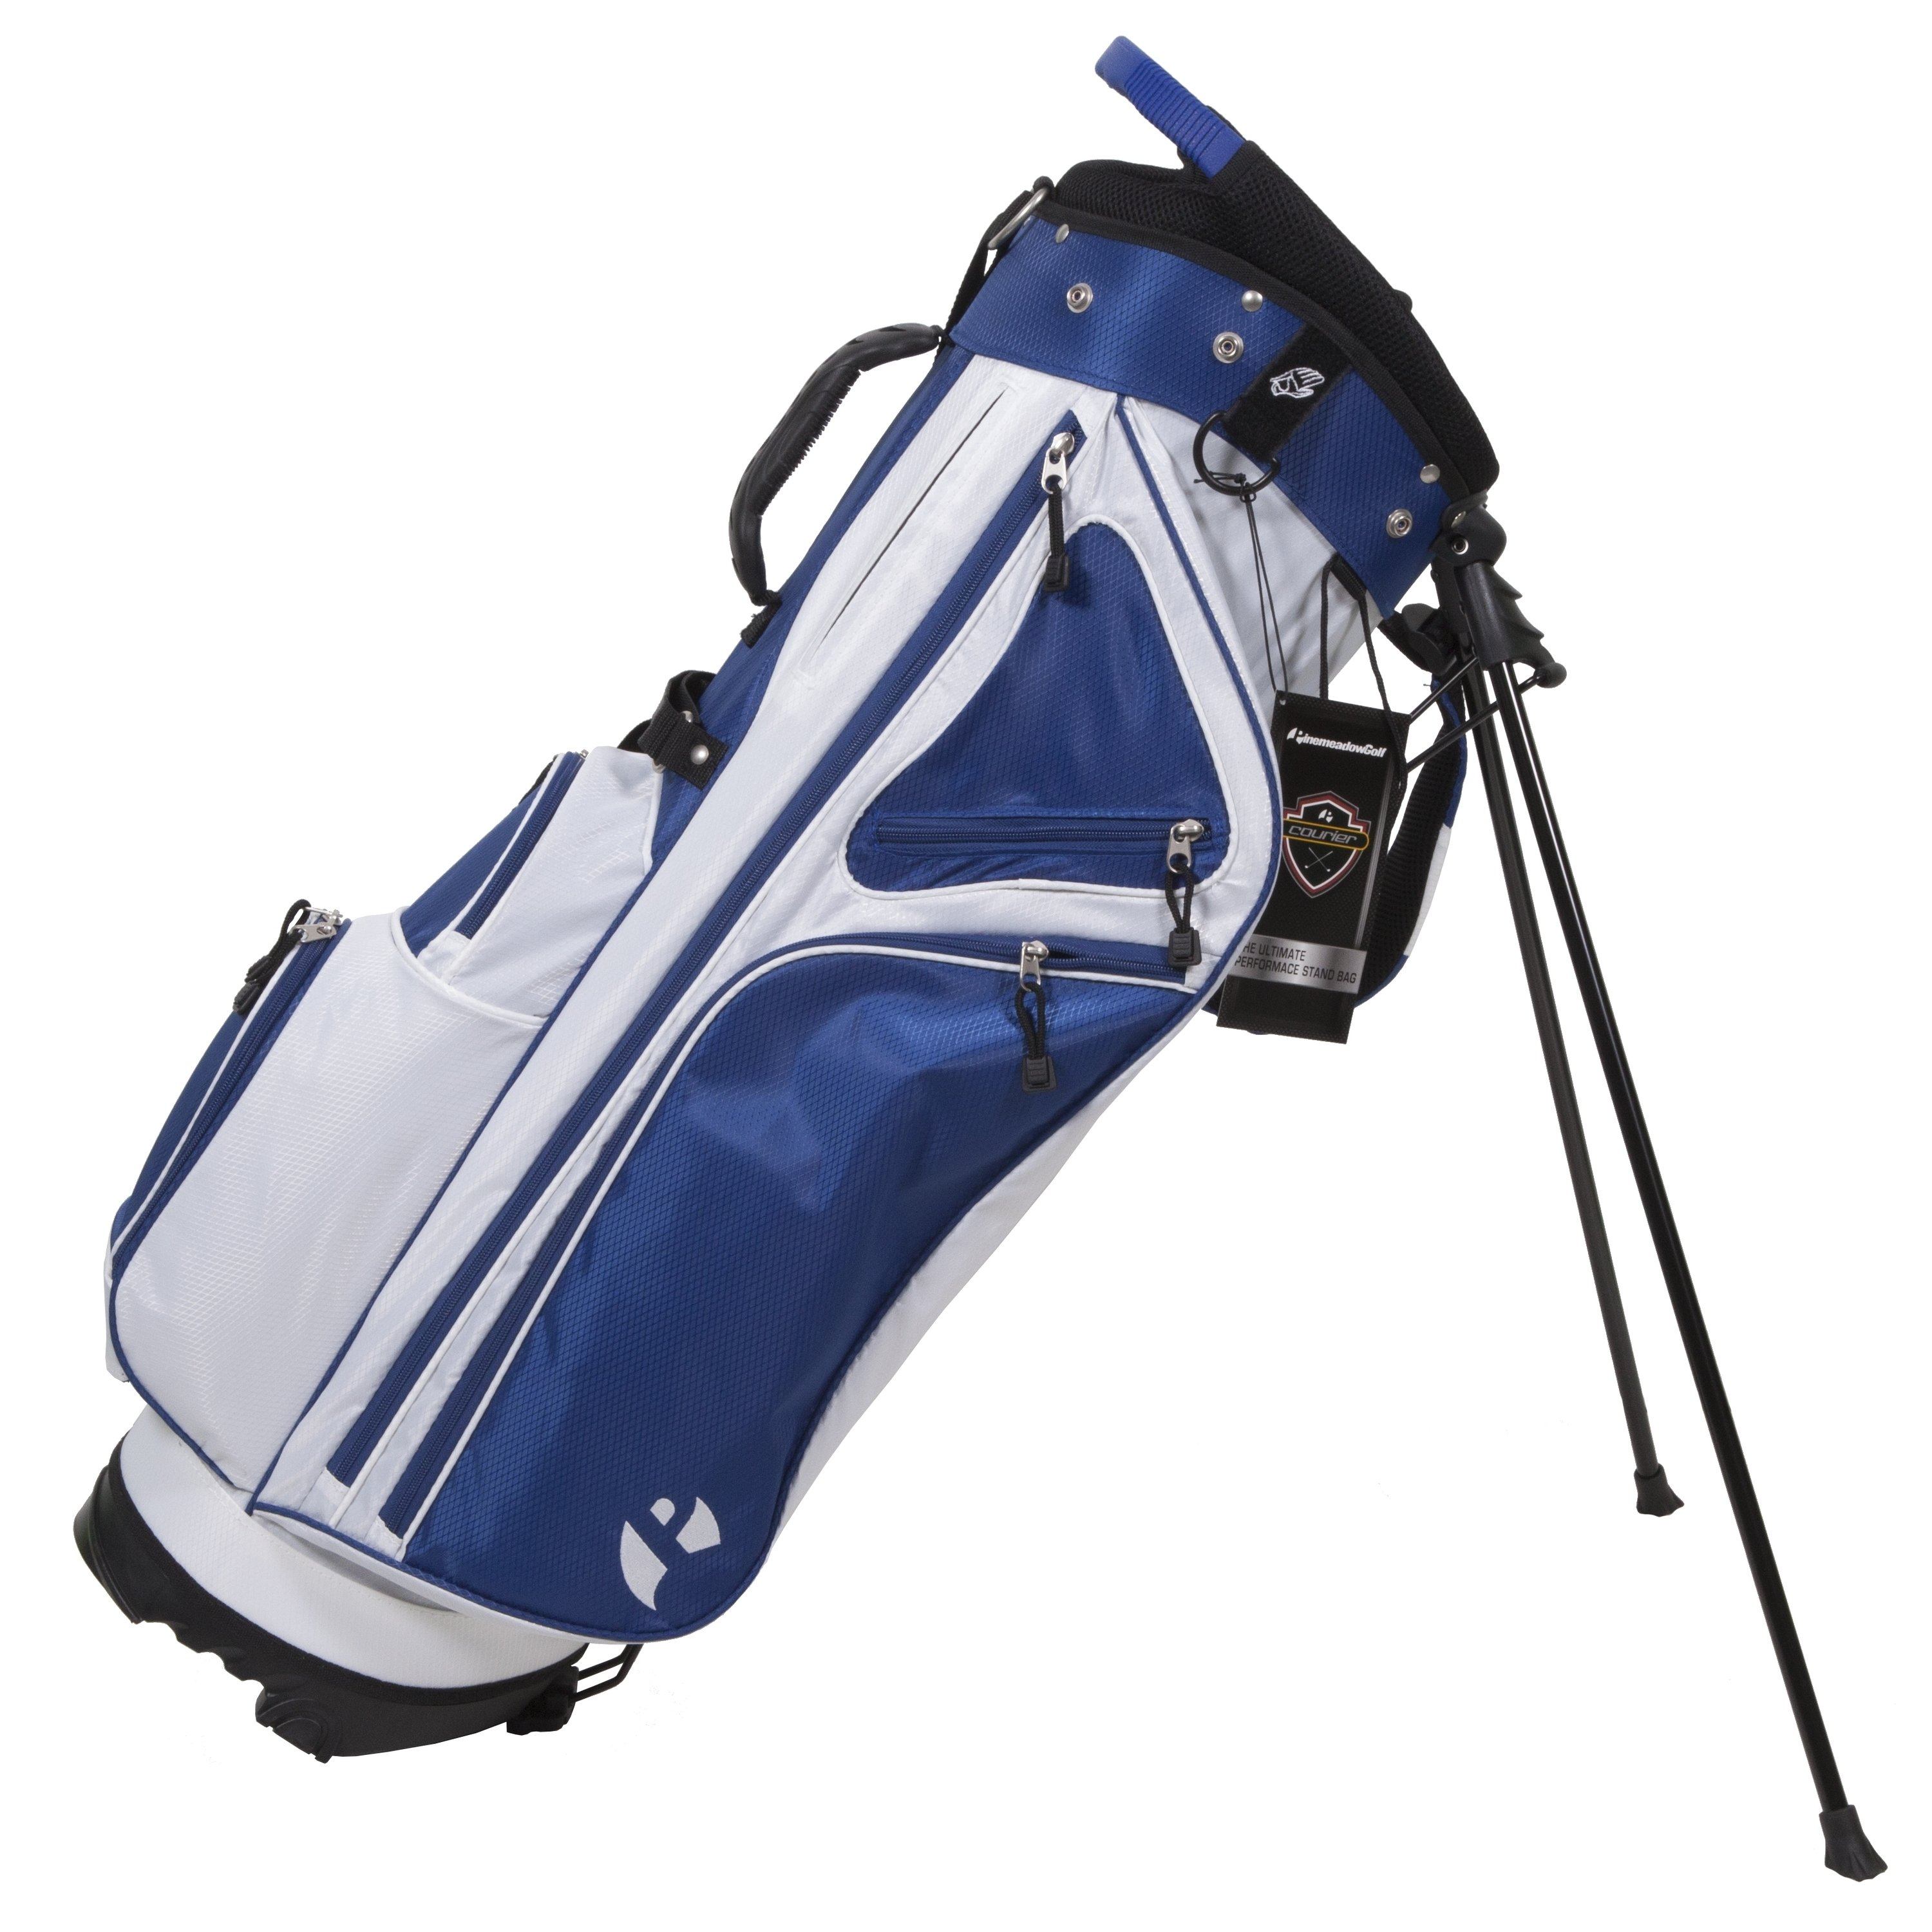 Pinemeadow Golf Courier 3.0 Stand Bag White, Blue